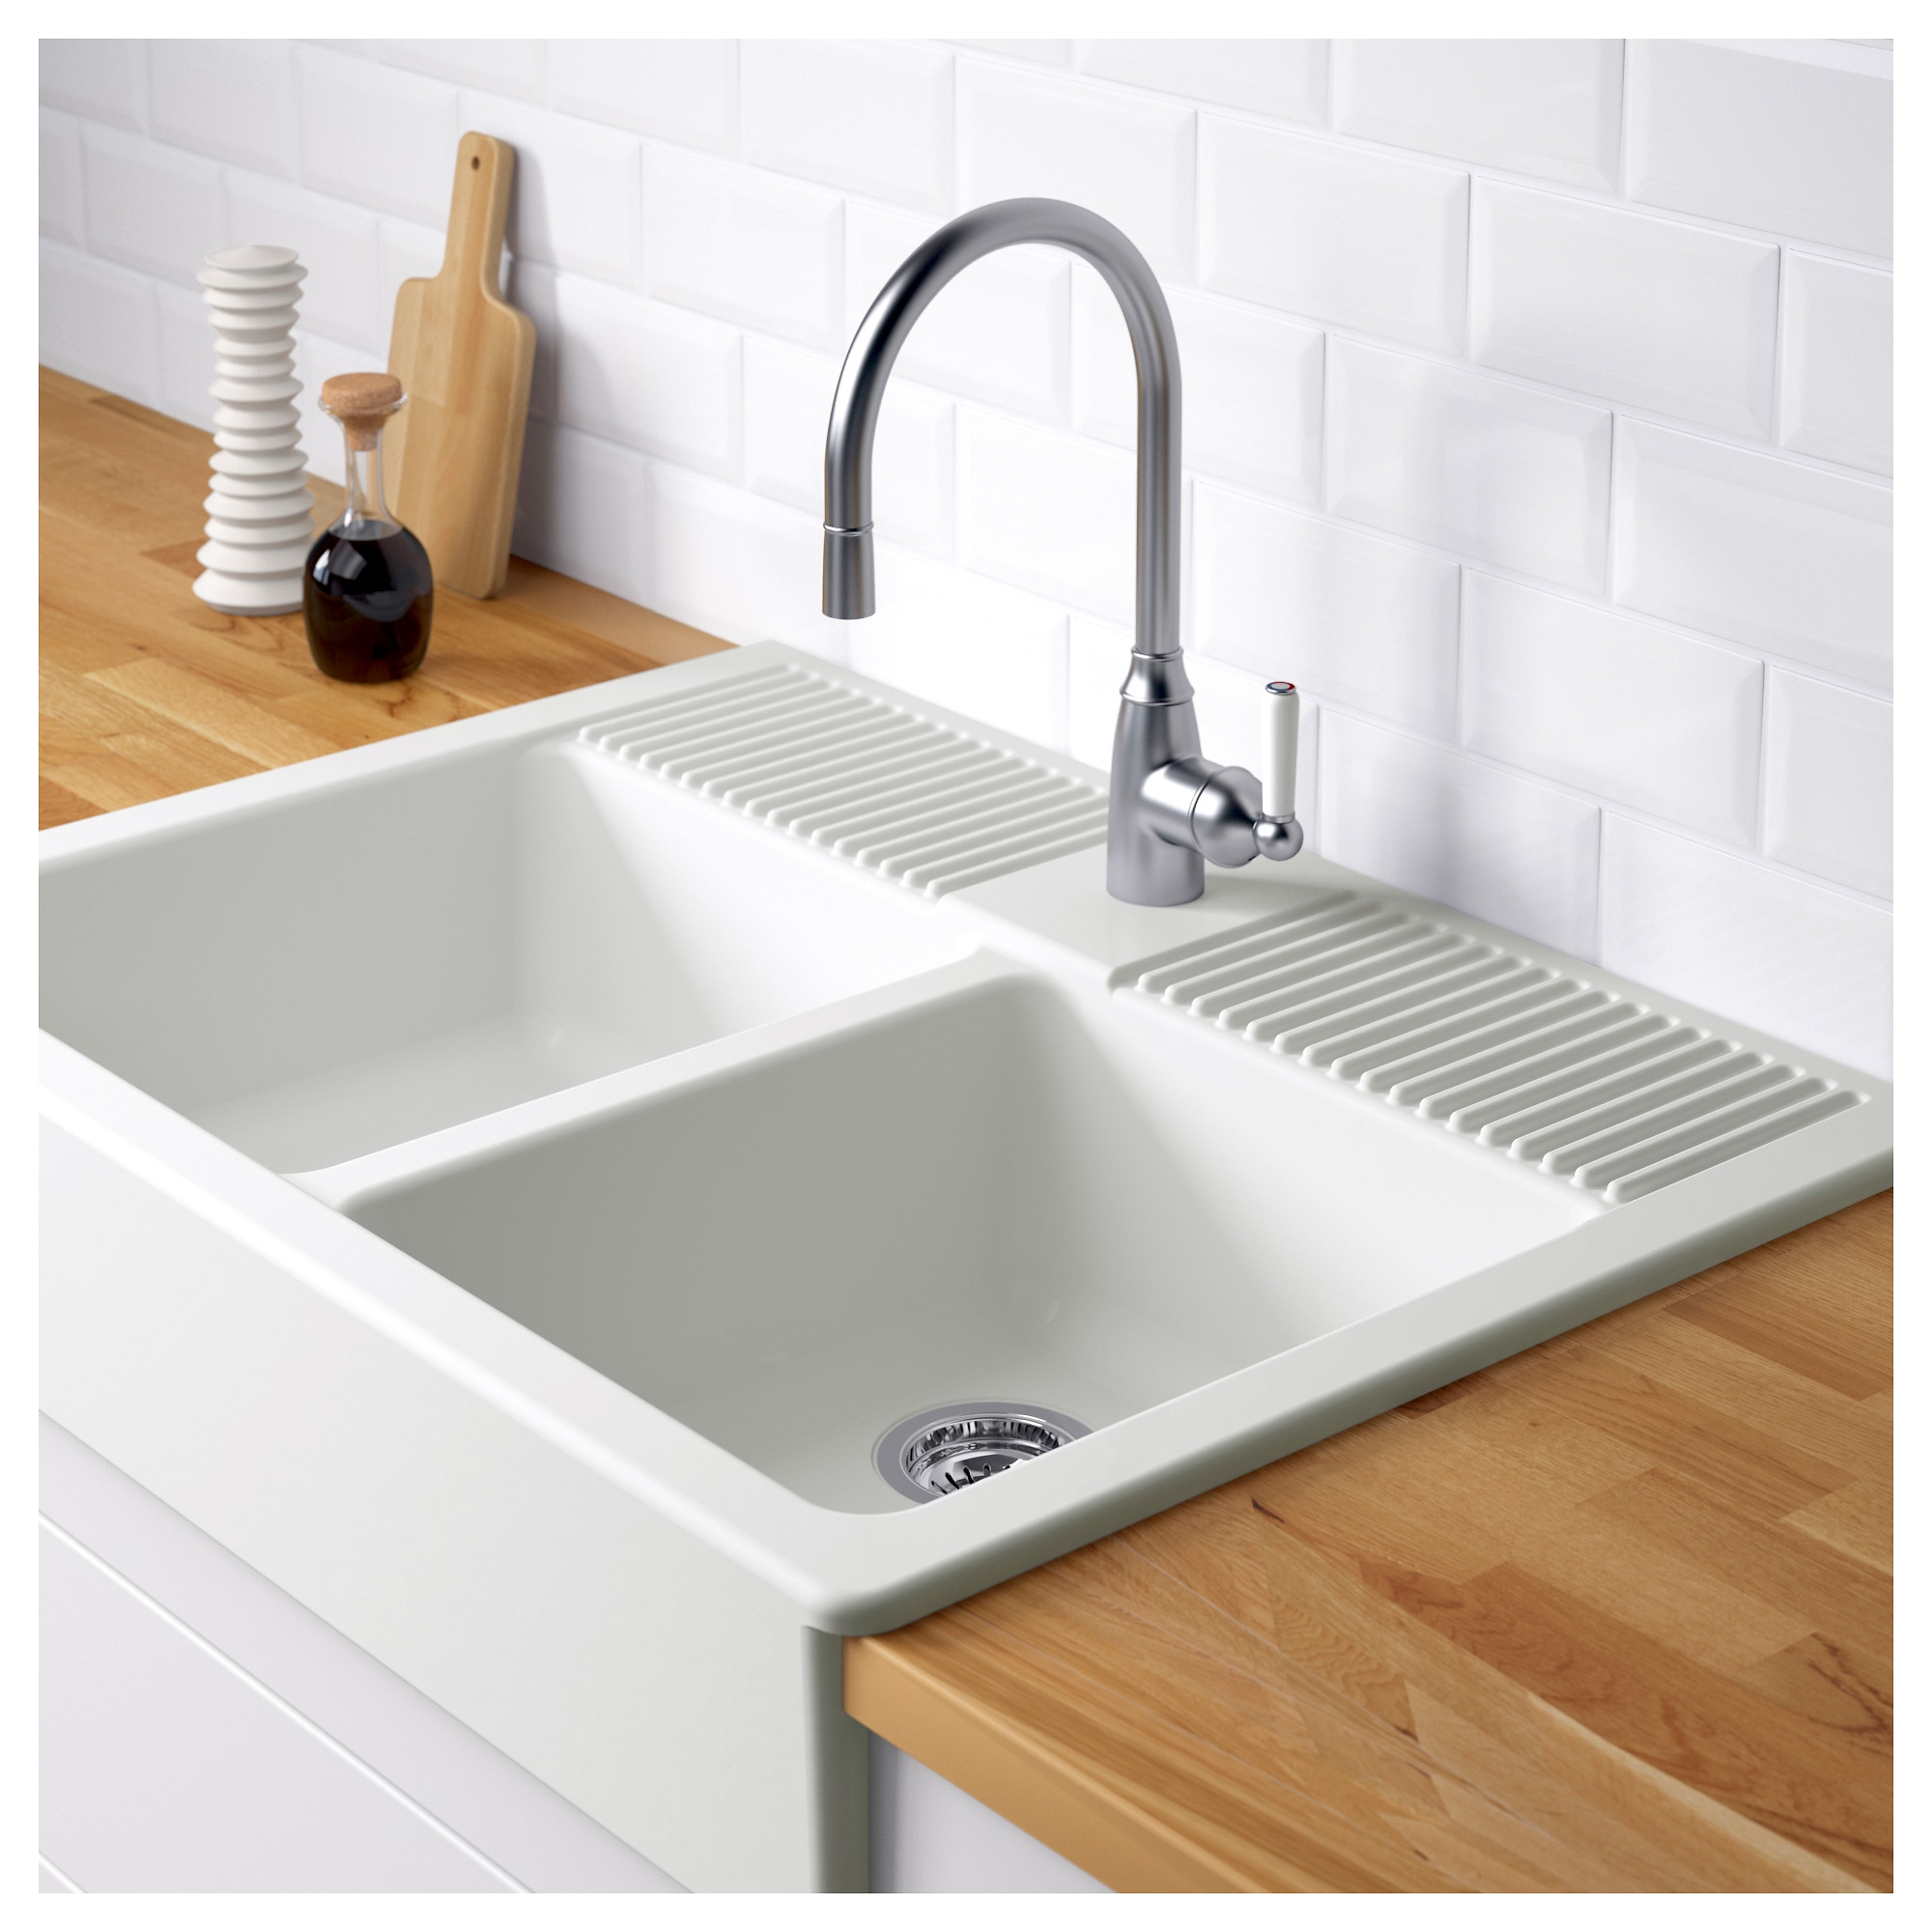 Ikea Farmers Sink: Ikea Domsjo Double Sink